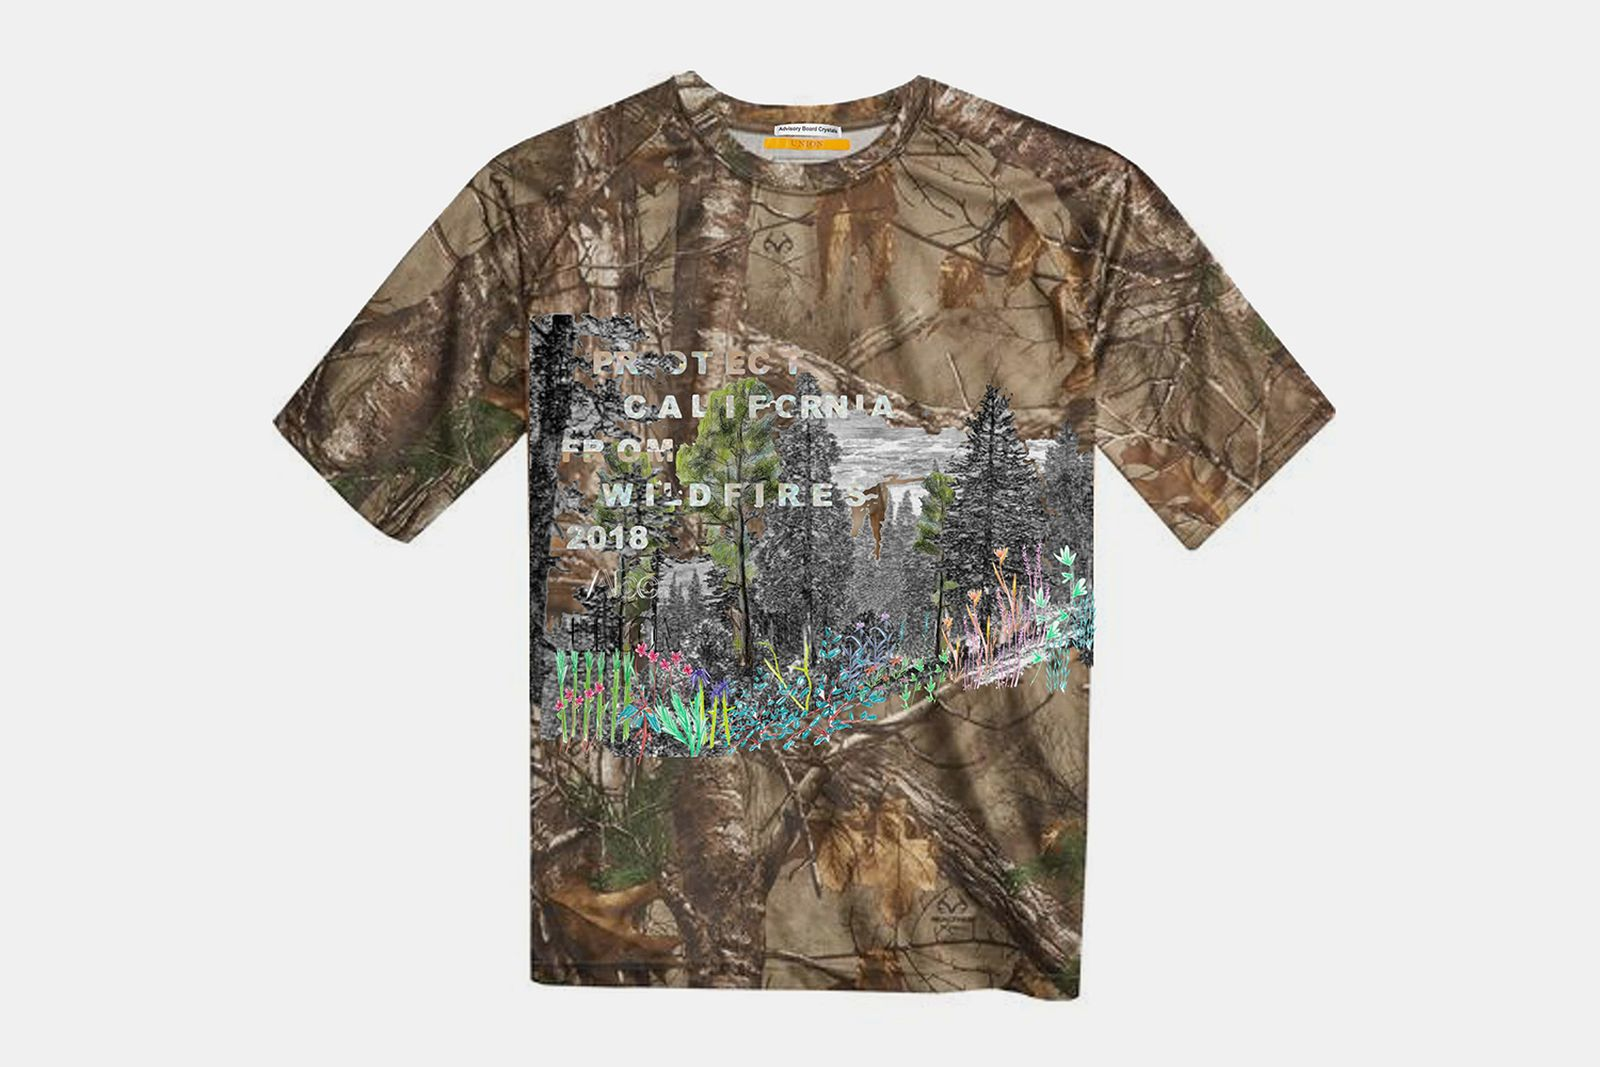 advisory board crystals union wildfires t shirt union los angeles